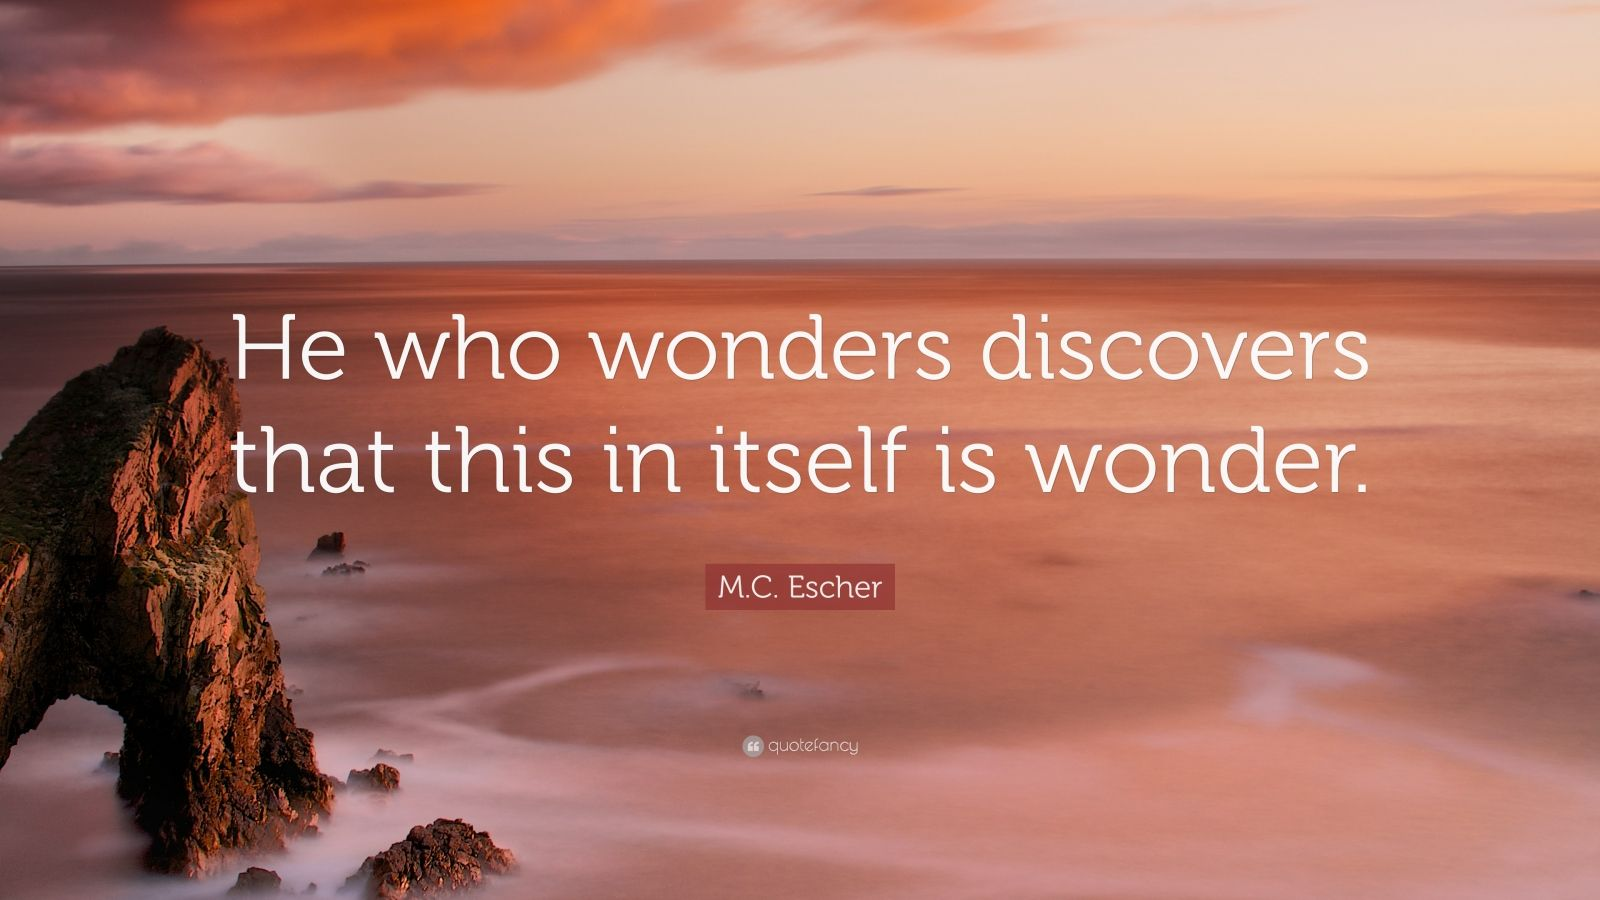 """M.C. Escher Quote: """"He who wonders discovers that this in itself is wonder."""""""